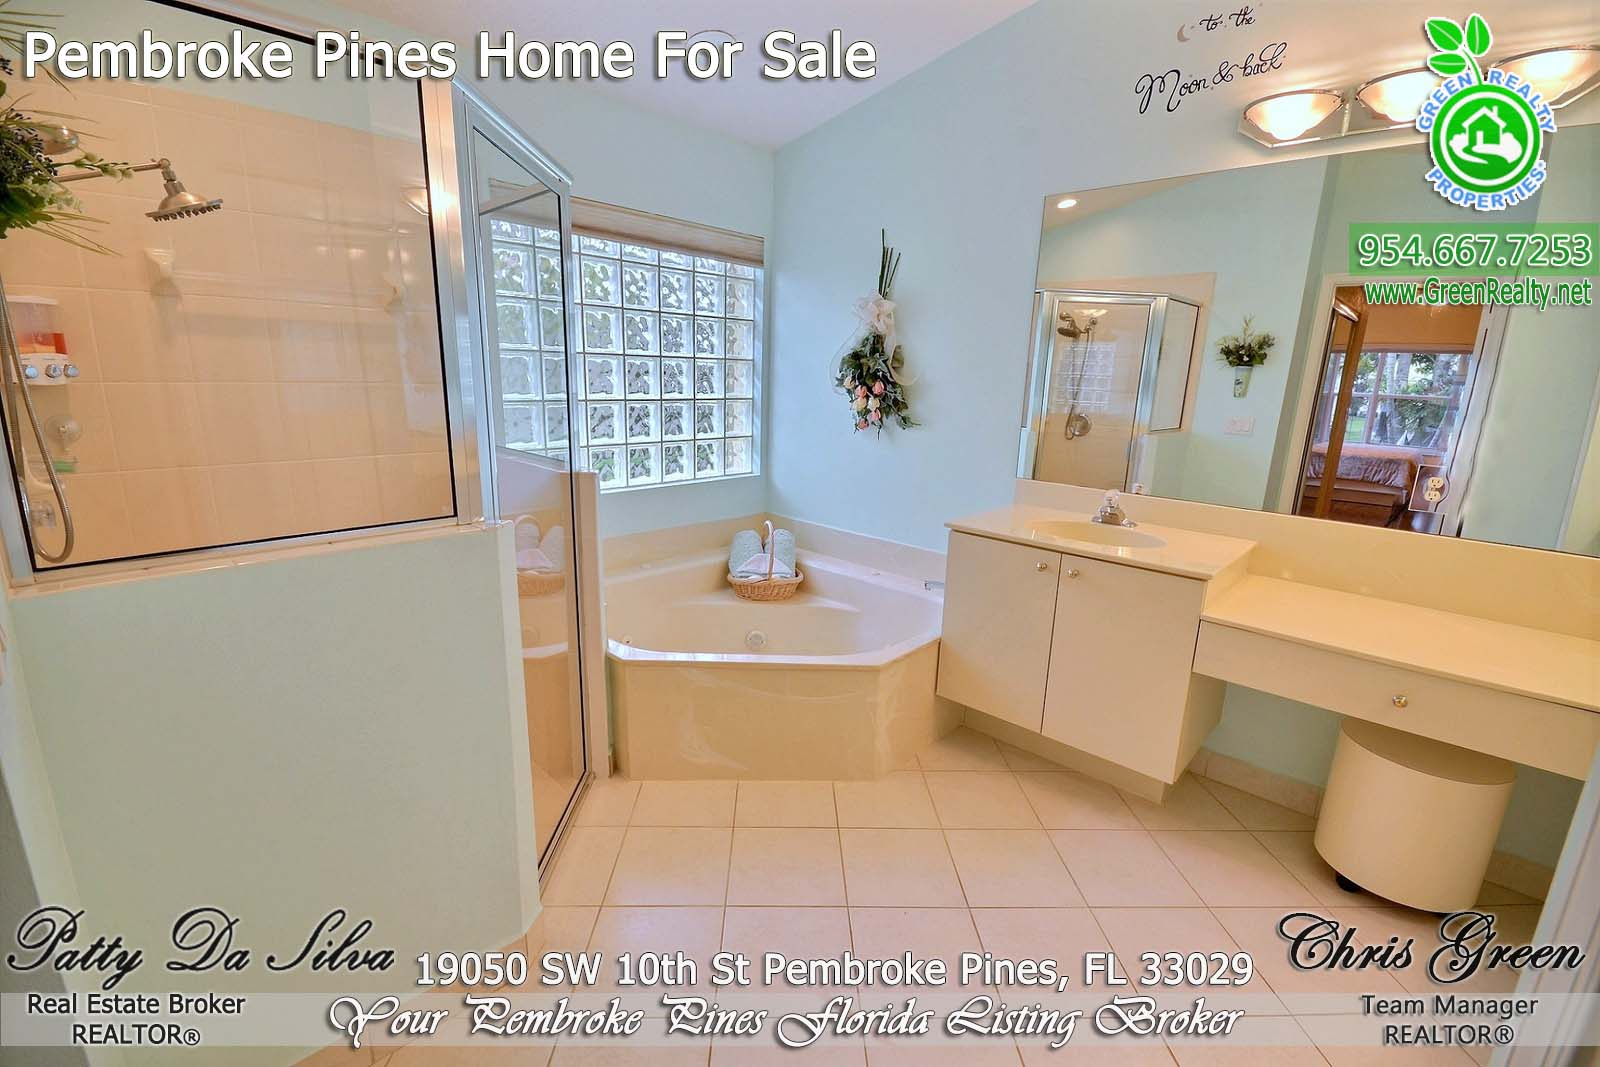 21 Homes For Sale in Pembroke Pines (1)